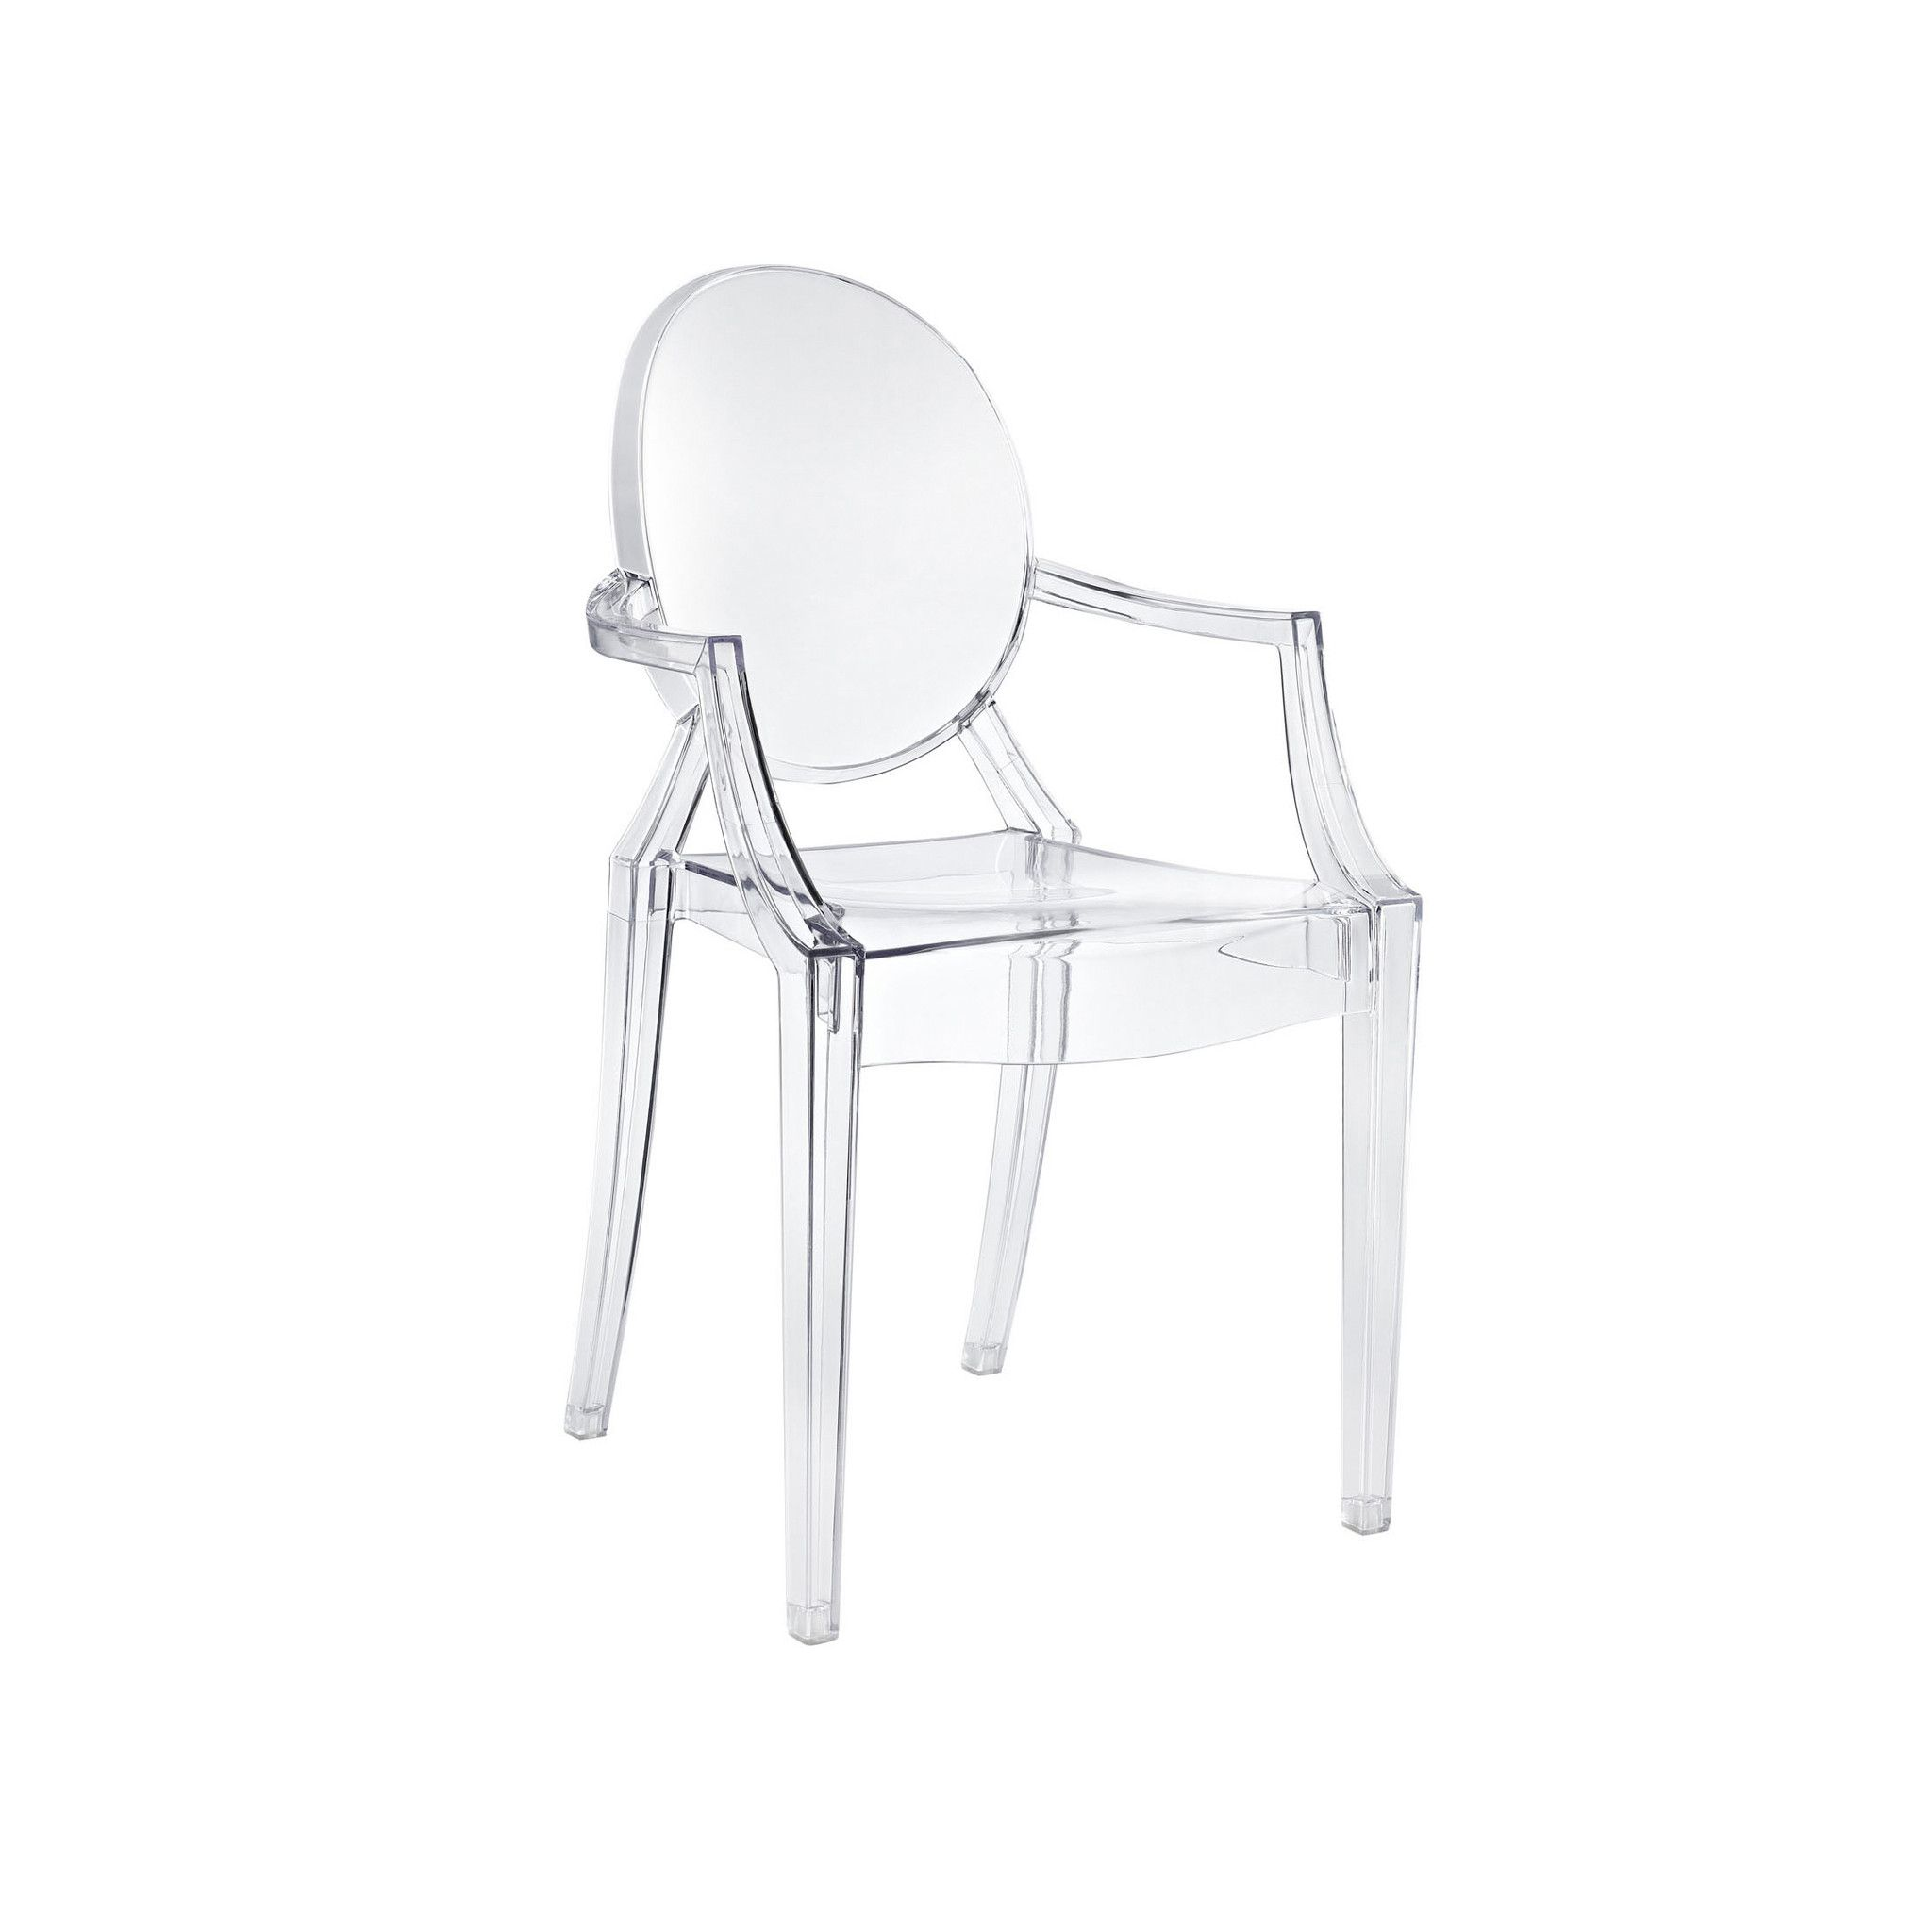 Polycarbonate Crystal Clear Ghost Dining Chair Minimum Order Quantity Needed Clear Dining Chairs Dining Arm Chair Acrylic Chair